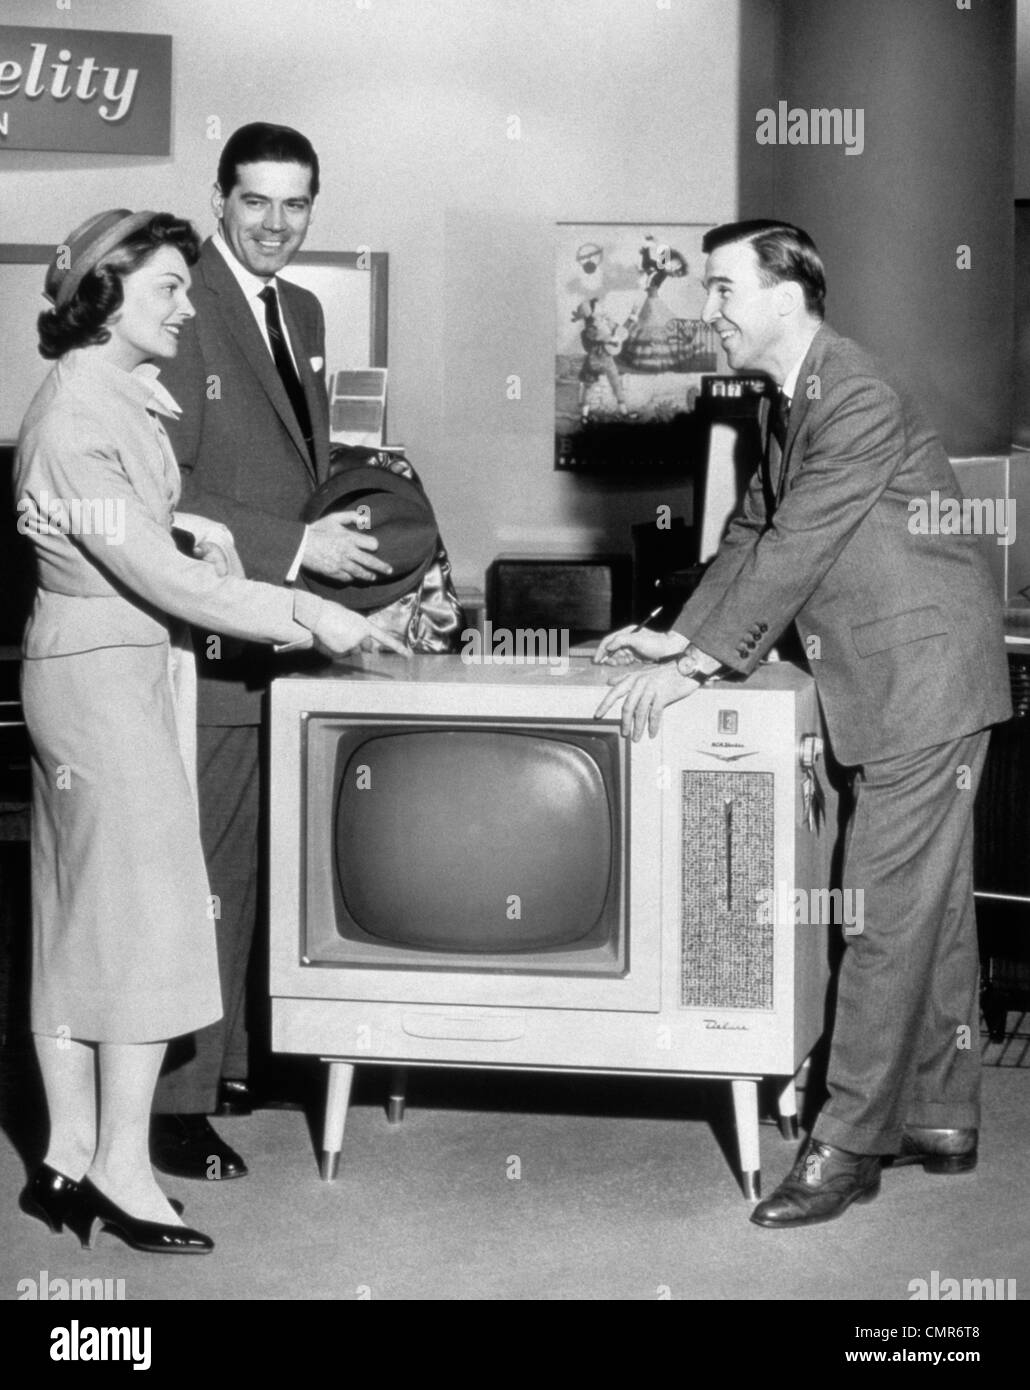 1950s 1960s Couple Buying New Console Television From